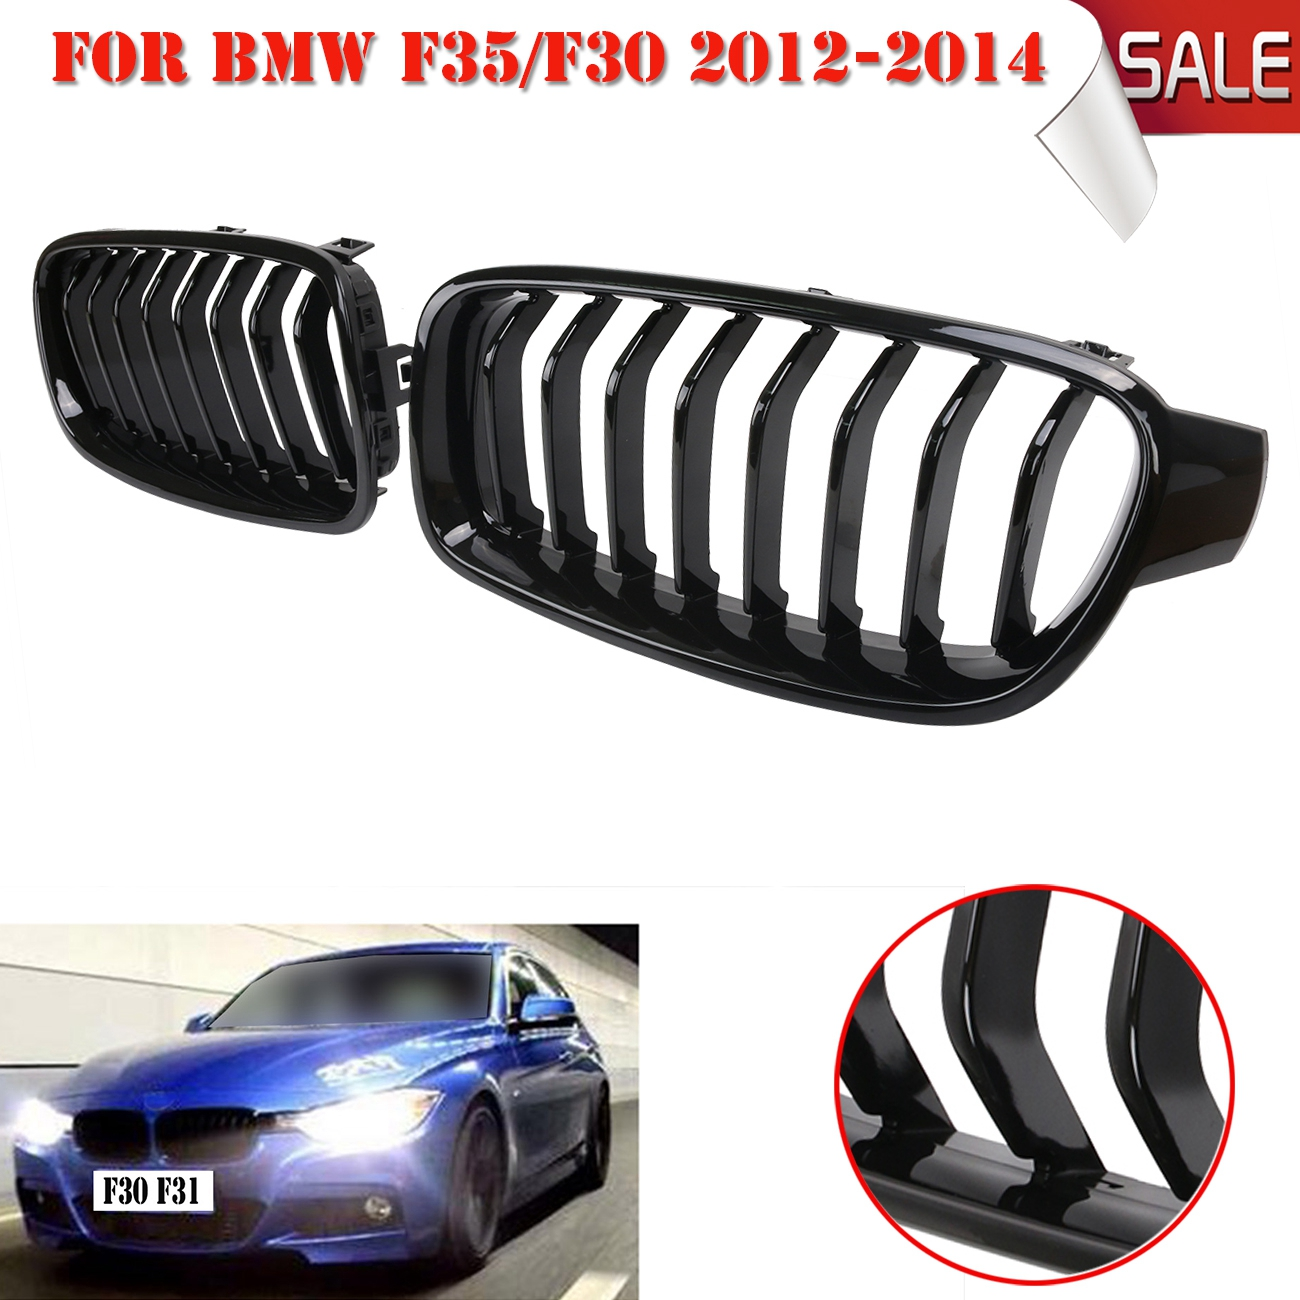 Front Kidney Grille Bumper Grill For BMW F30 F31 F35 320i 328i 335i 2010 2011 2012 2013 2014 Glossy Black Car-Styling #P356 front kidney grille bumper grill for bmw f30 f31 f35 320i 328i 335i 2010 2011 2012 2013 2014 glossy black car styling p356